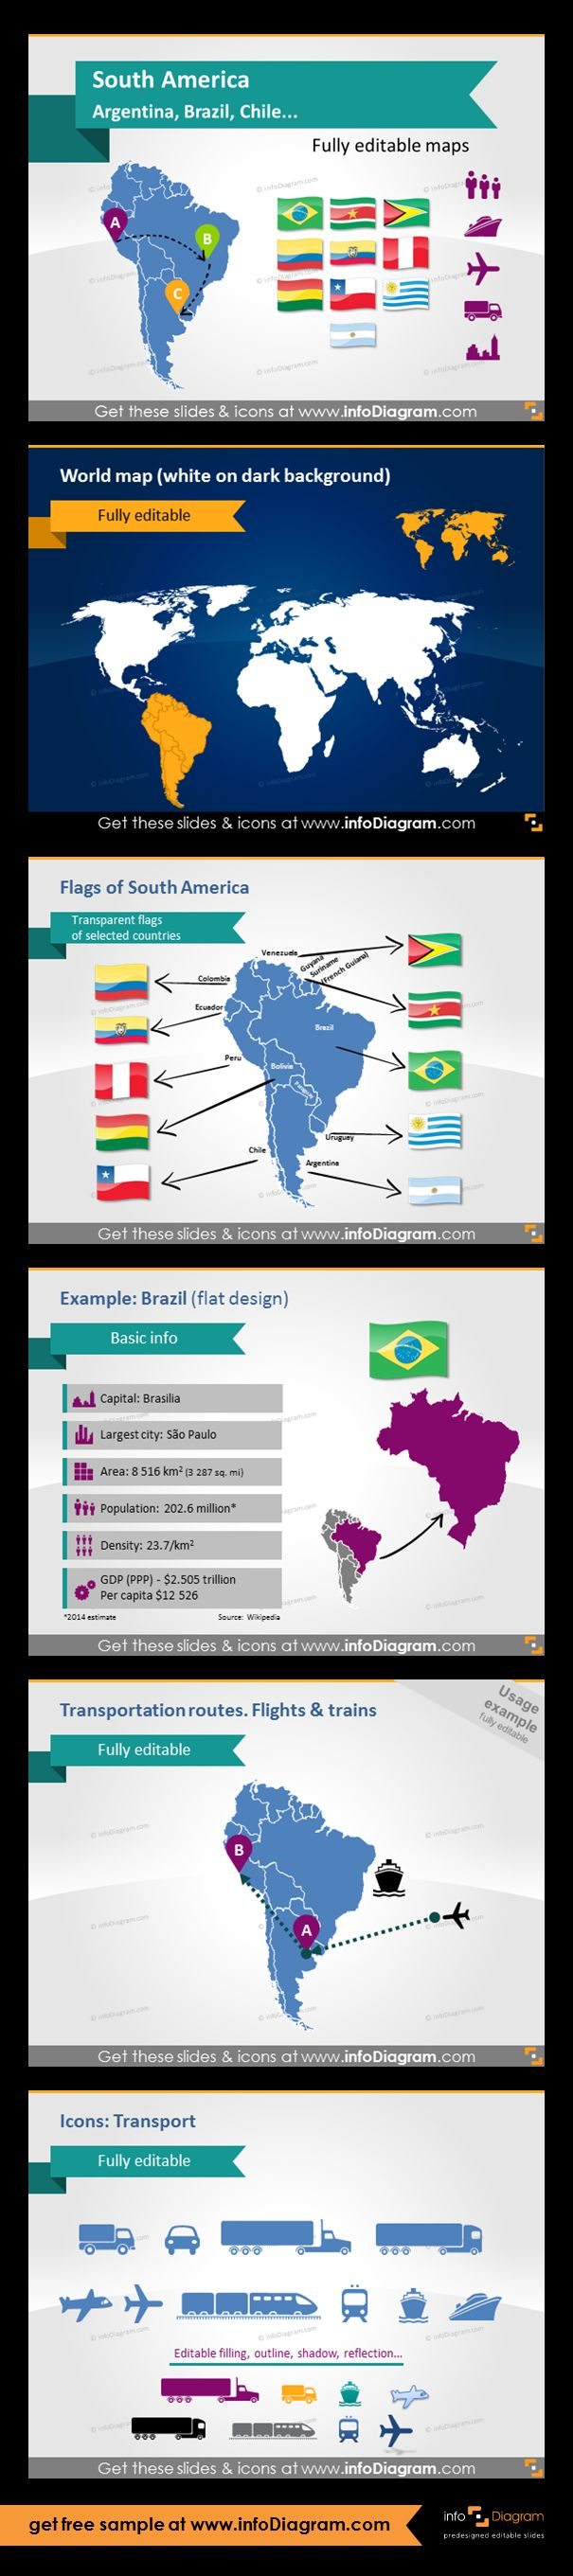 South America countries - editable PowerPoint maps, localization and transport icons, country statistics. Fully editable maps, icons, arrows. World map with dark background, flags of South America, Brazil map with basic information, transportation routes: flights and trains between the countries - infographics example. Transportation icons: Truck, Train, Plane, Ship, Bus, Lorry for illustrating logistic routes on the South America map.